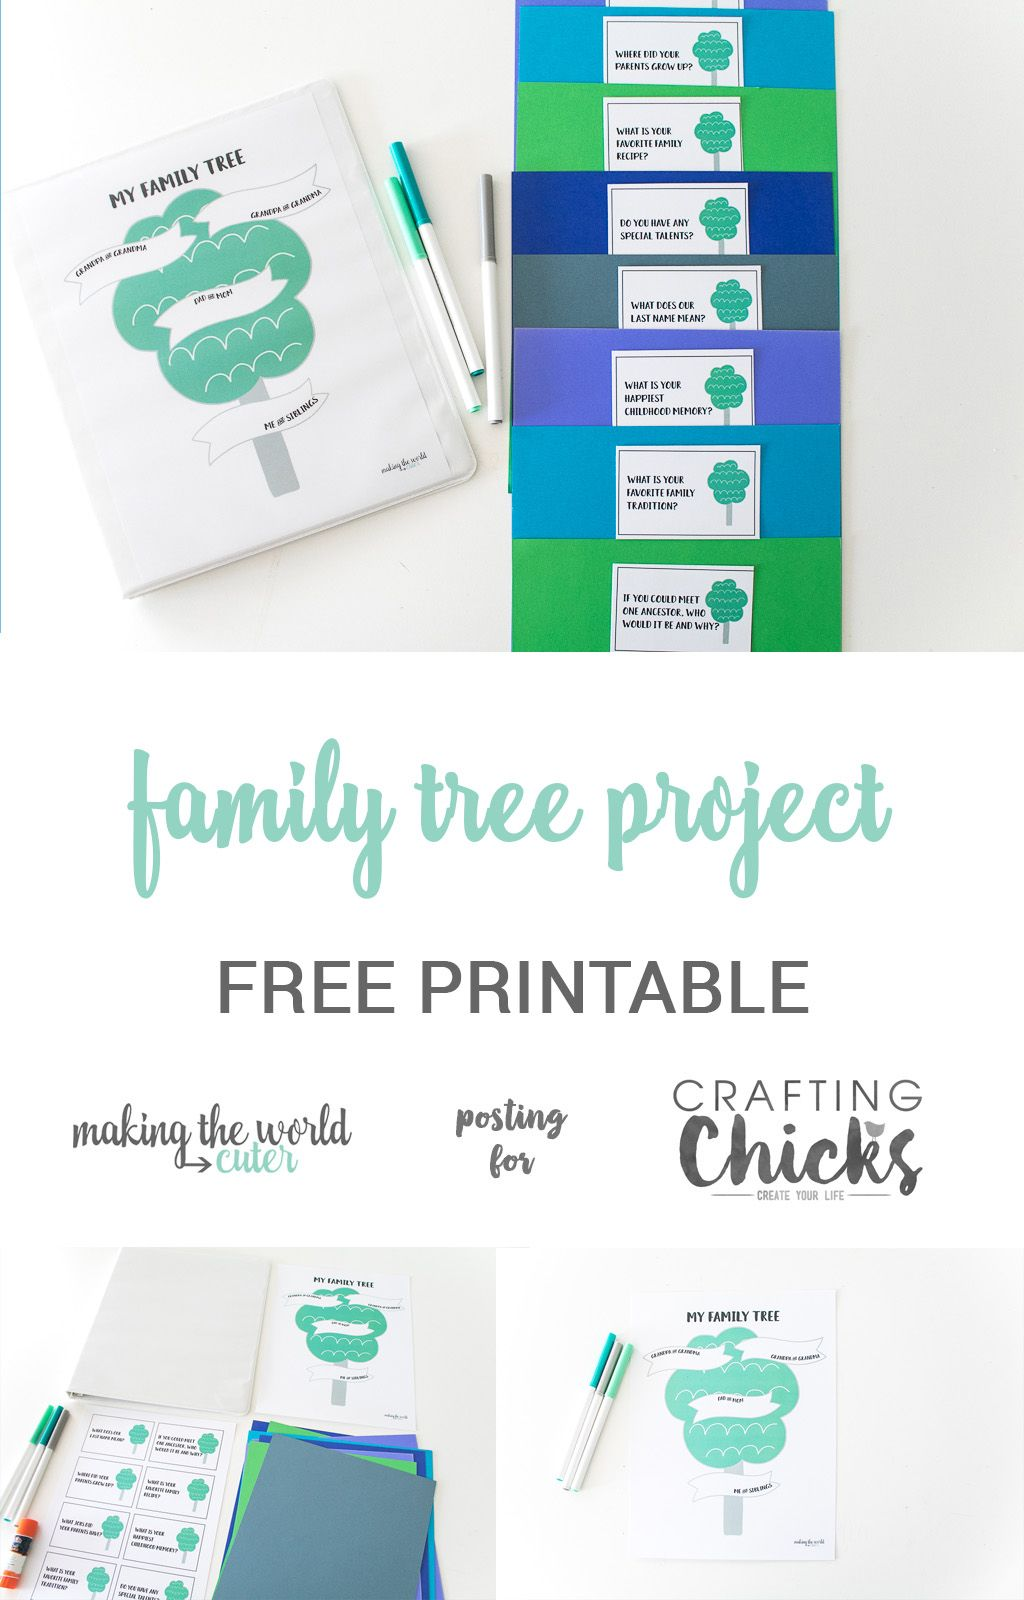 Family Tree Project For Kids With Free Printable